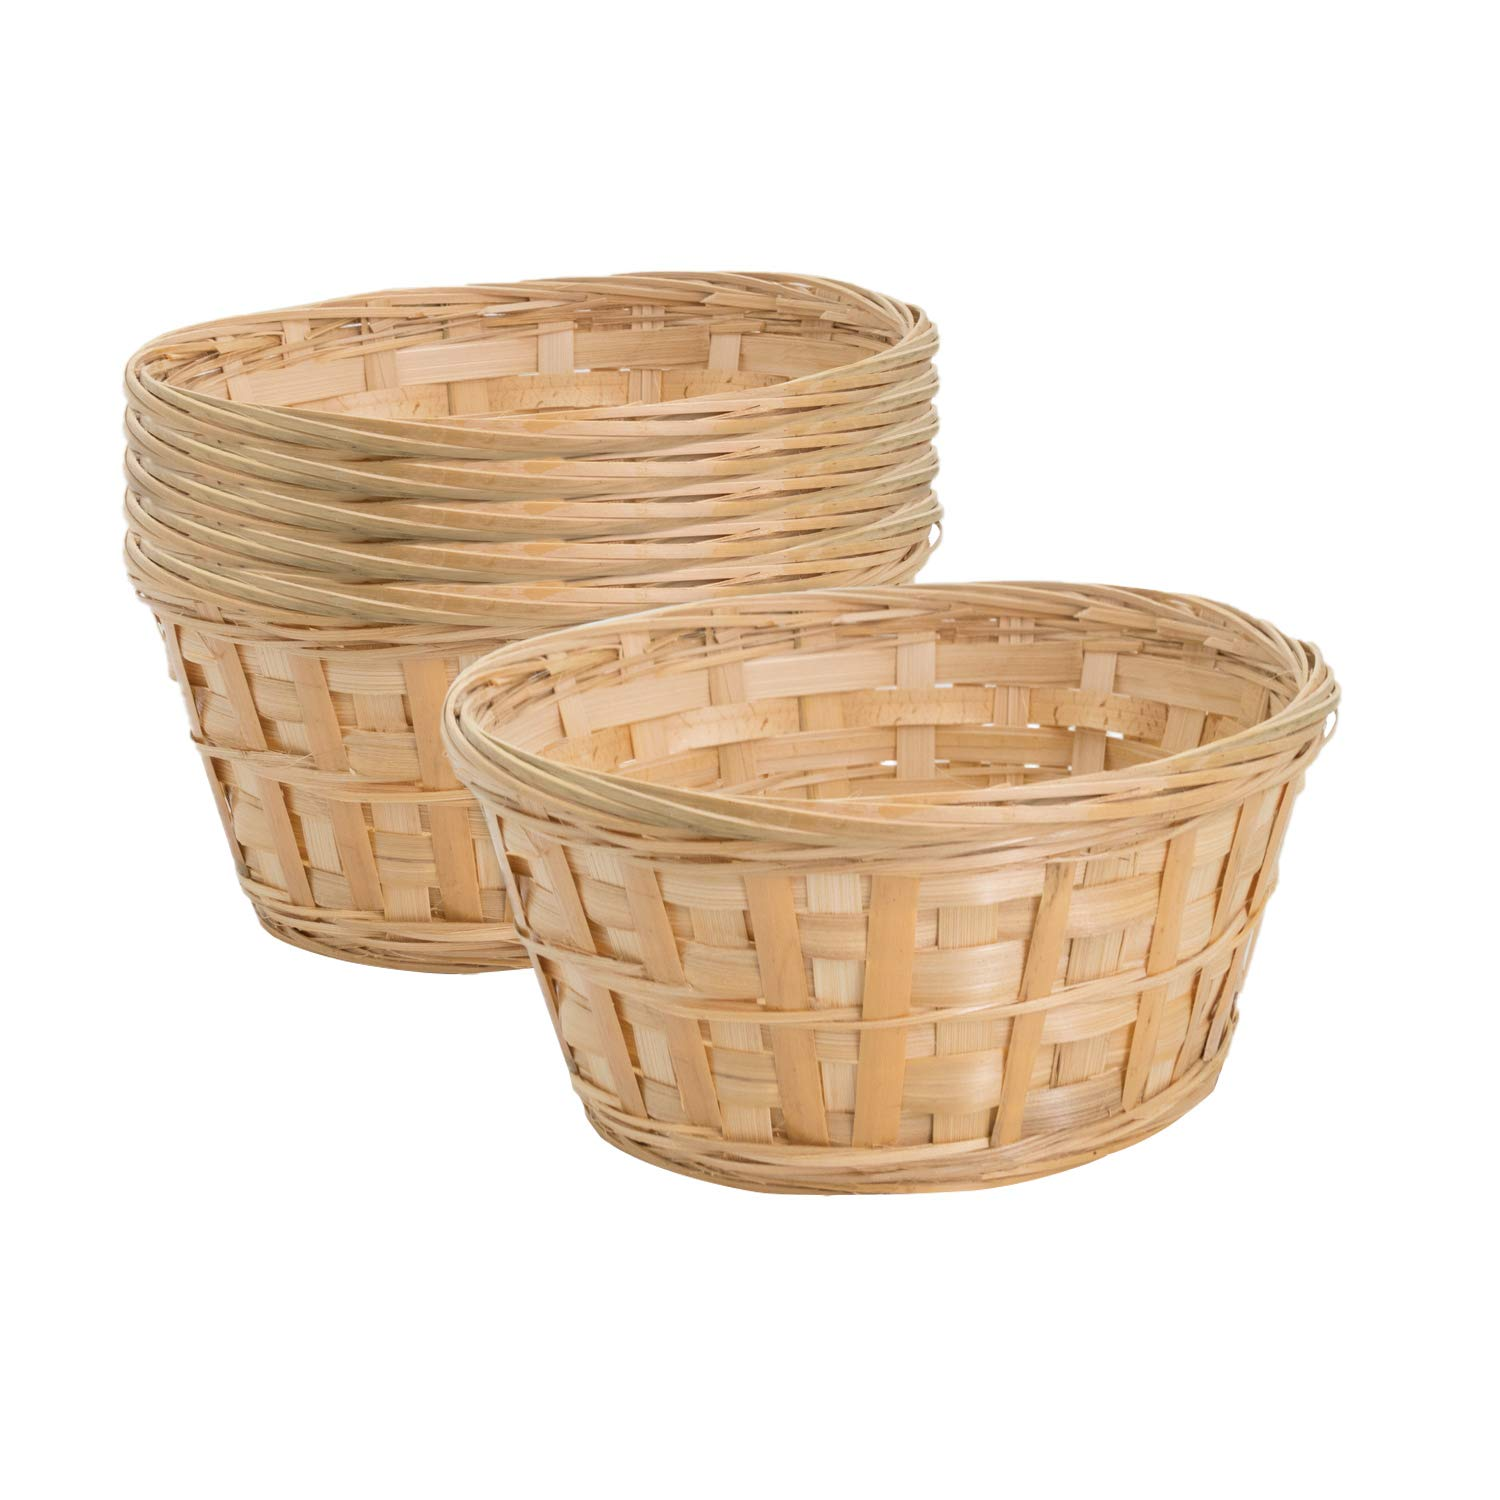 Royal Imports 8'' Round Natural Bamboo Handwoven Bread Basket 4''x8'' with Braided Rim, Pack of 6